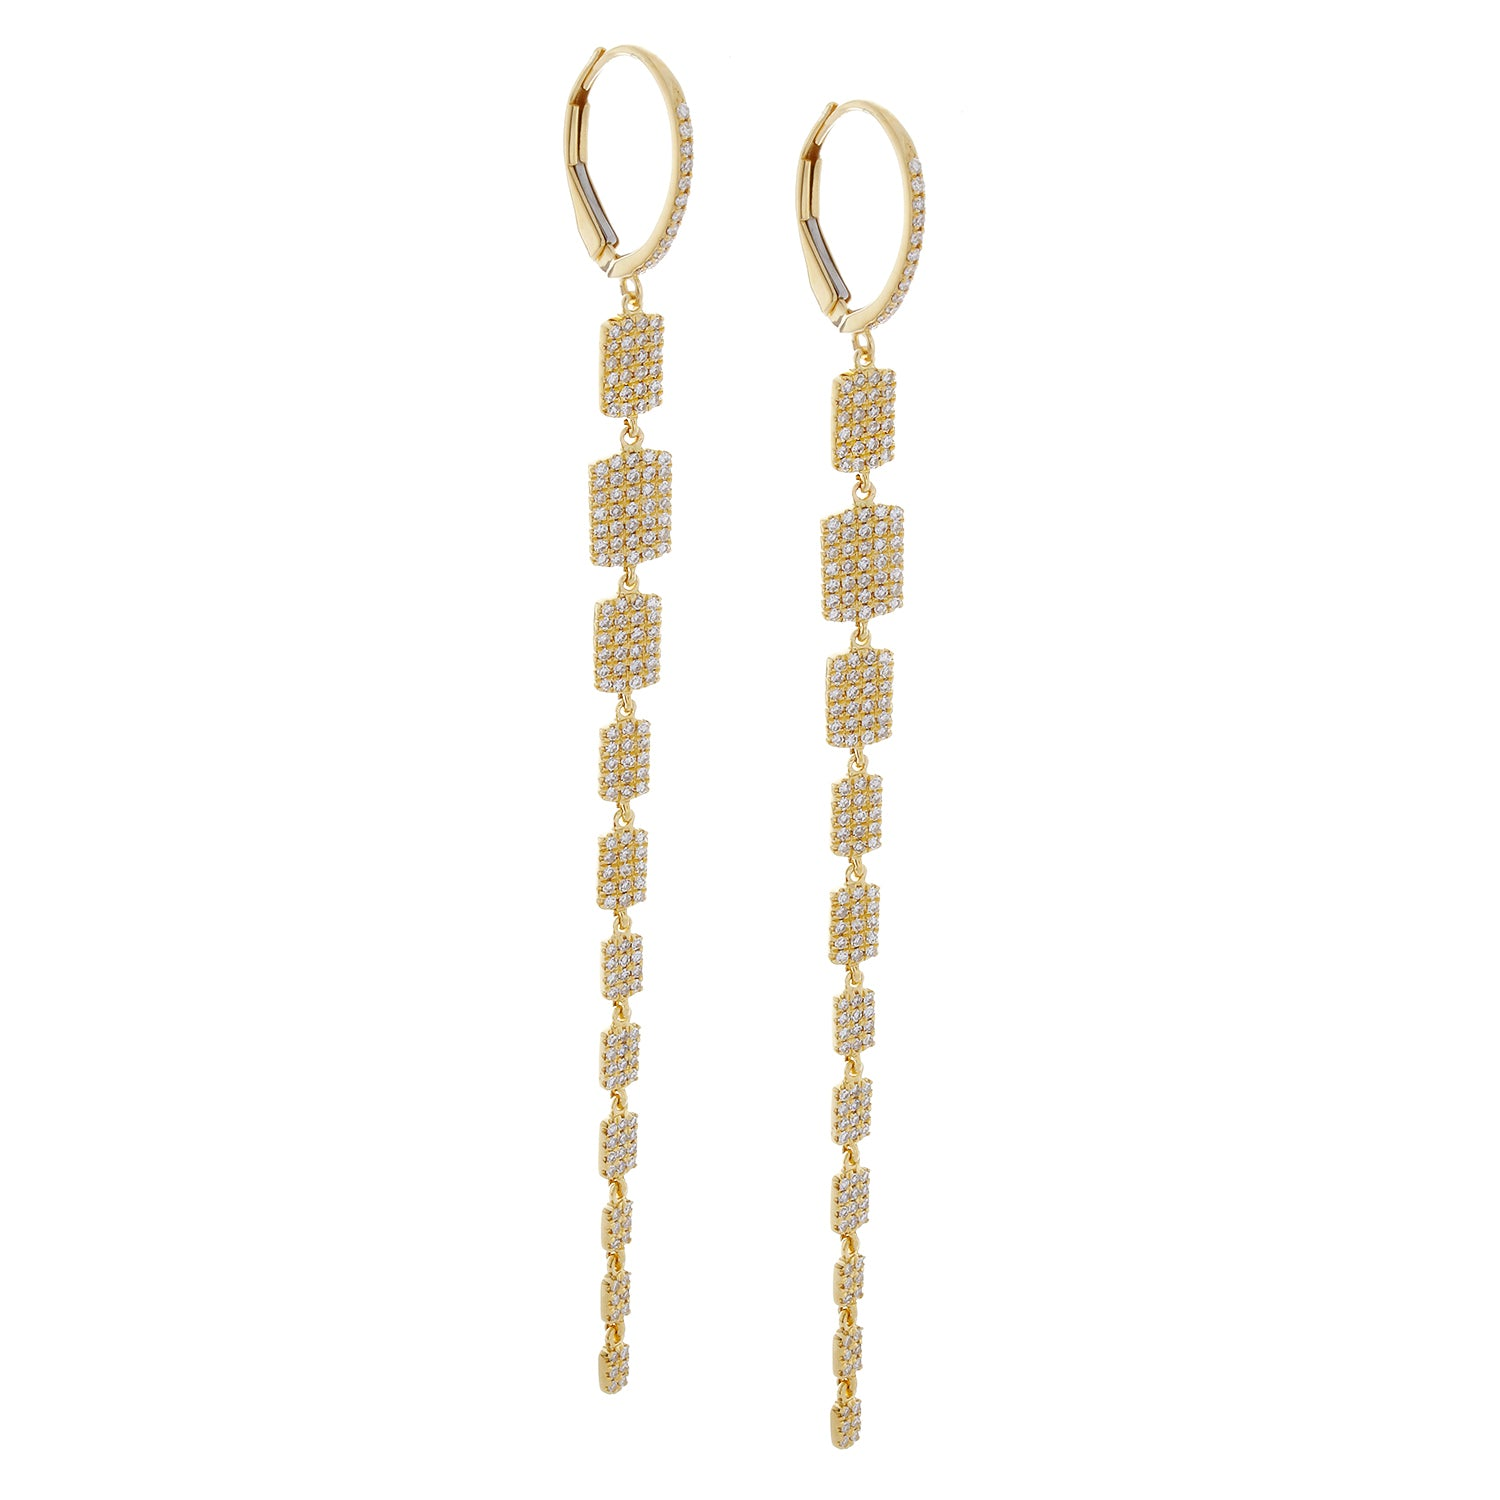 Diamonds Dangle Yellow Gold Earrings - SOLD/CAN BE SPECIAL ORDERED WITH 4-6 WEEKS DELIVERY TIME FRAME